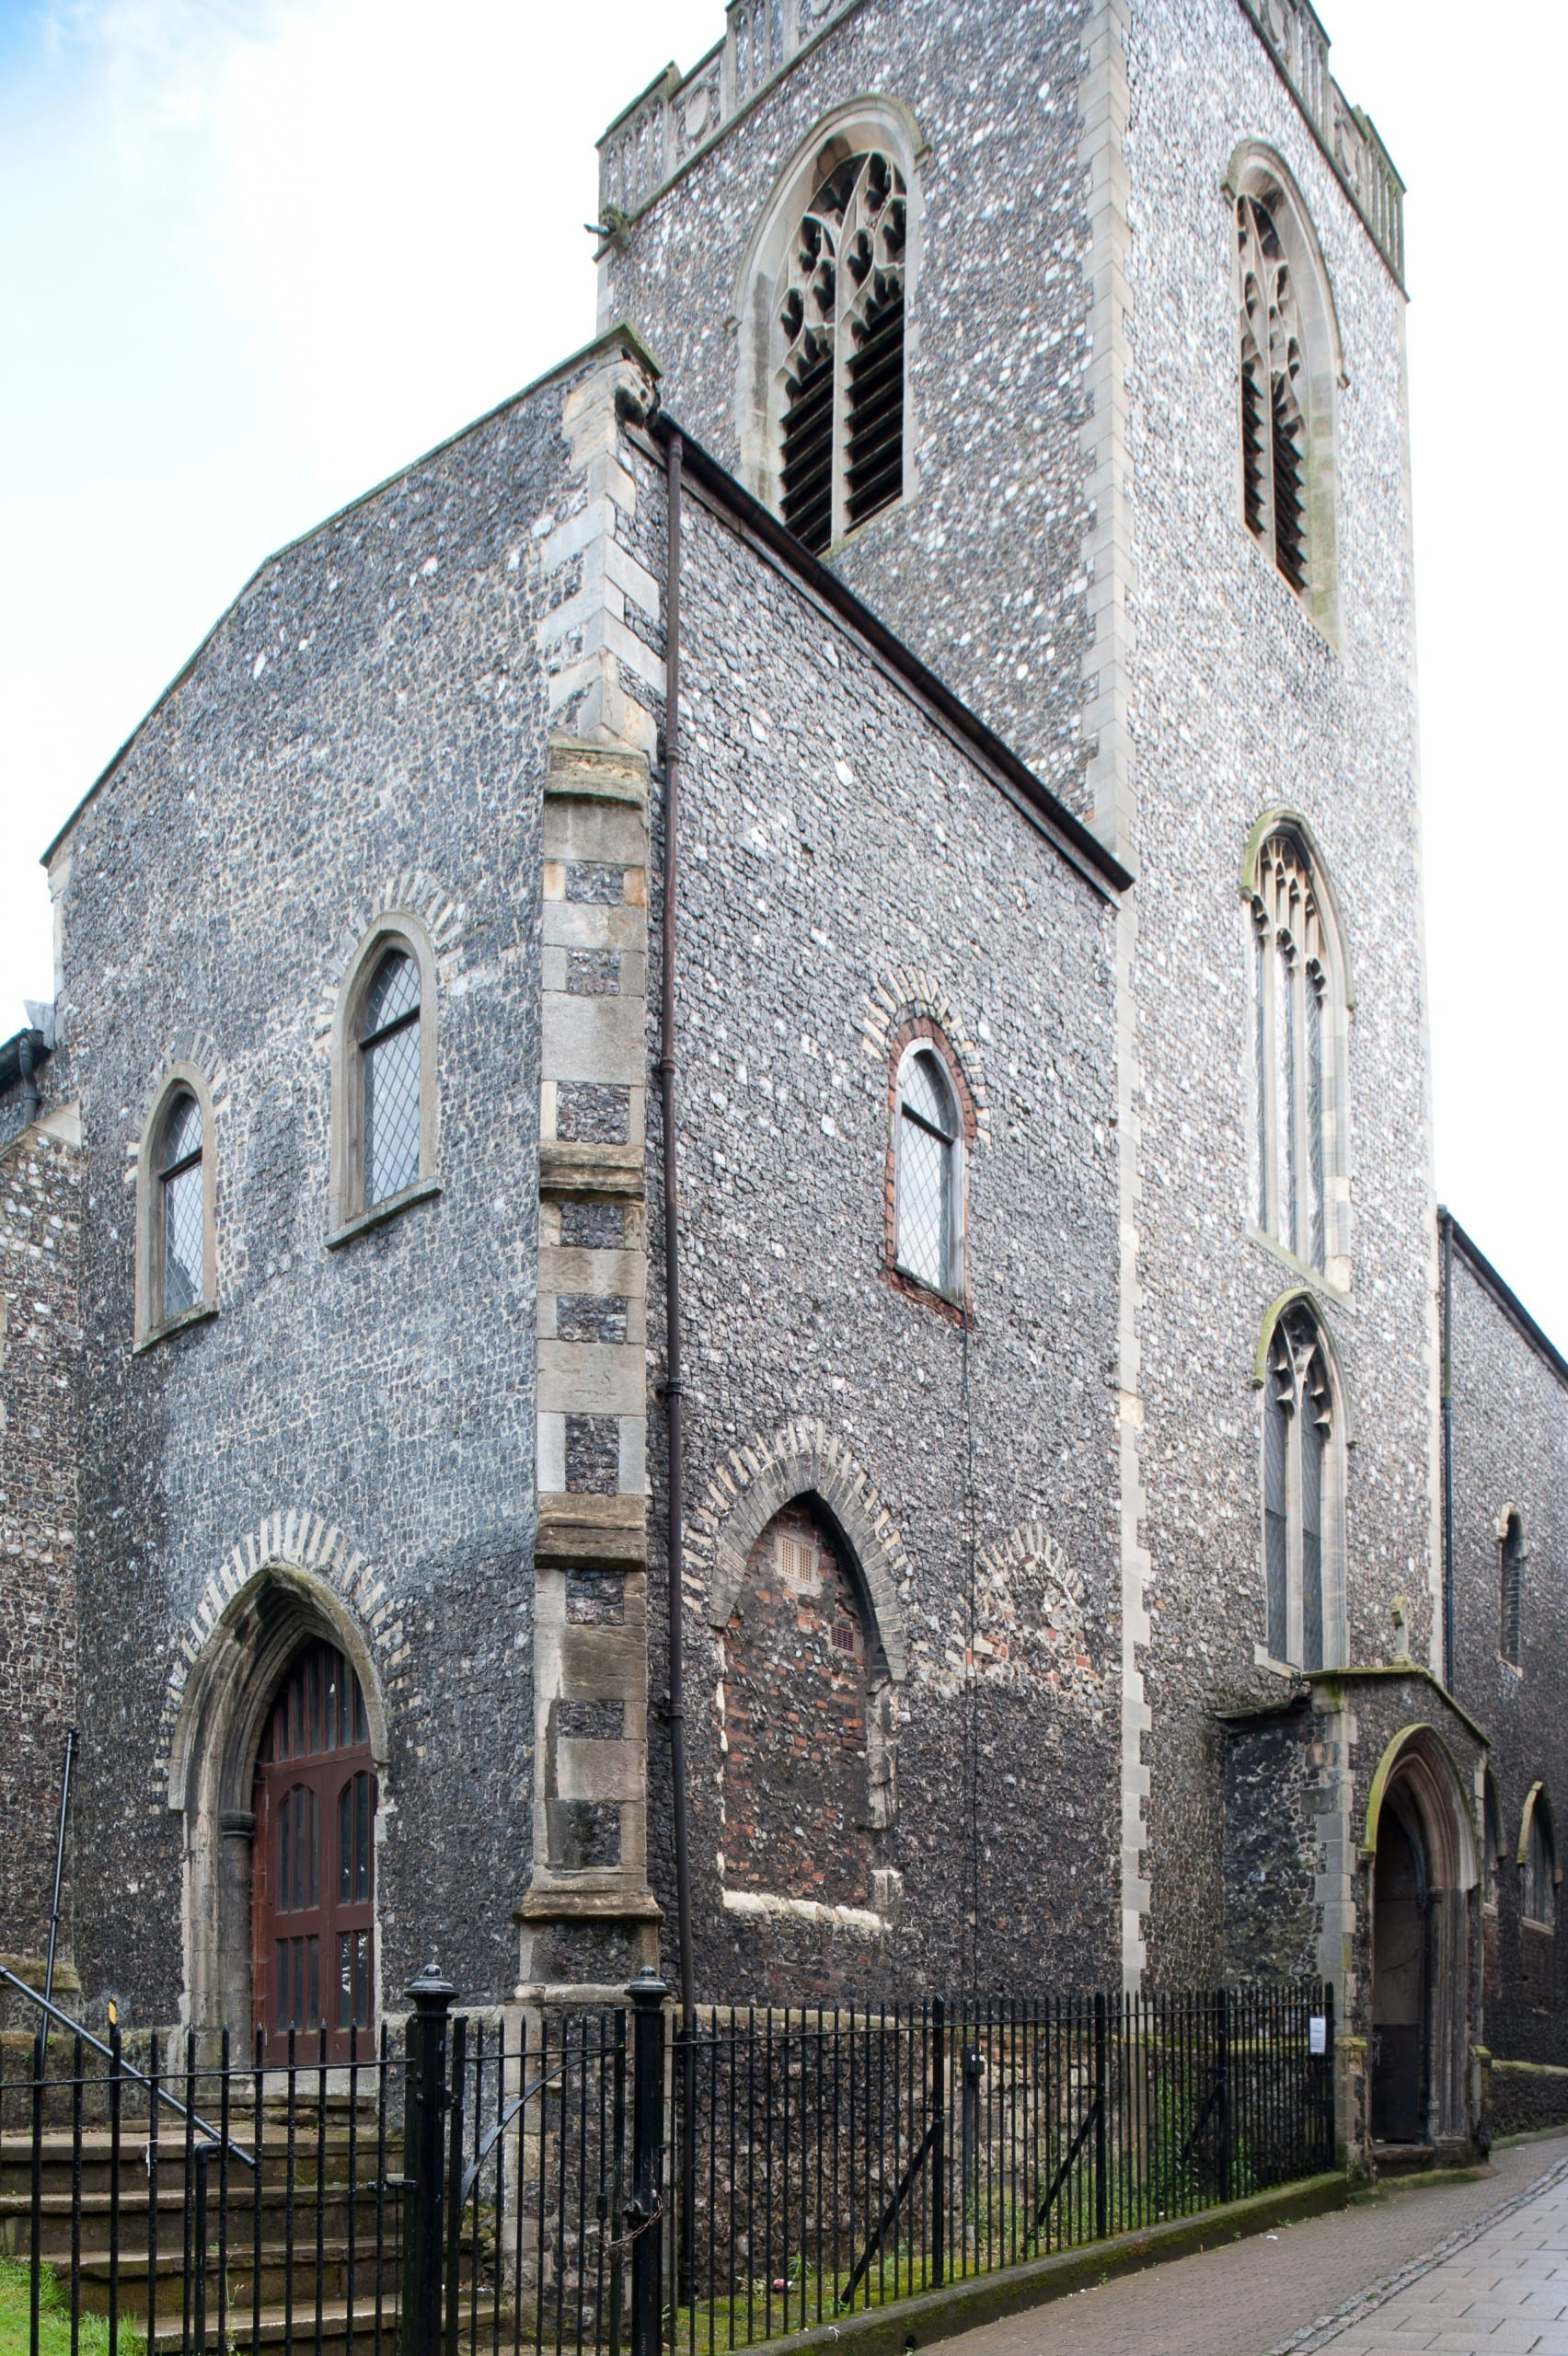 Fig. 6: West end of the former parish church of St. Gregory Pottergate, Norwich, England, view looking southeast (author's photo).